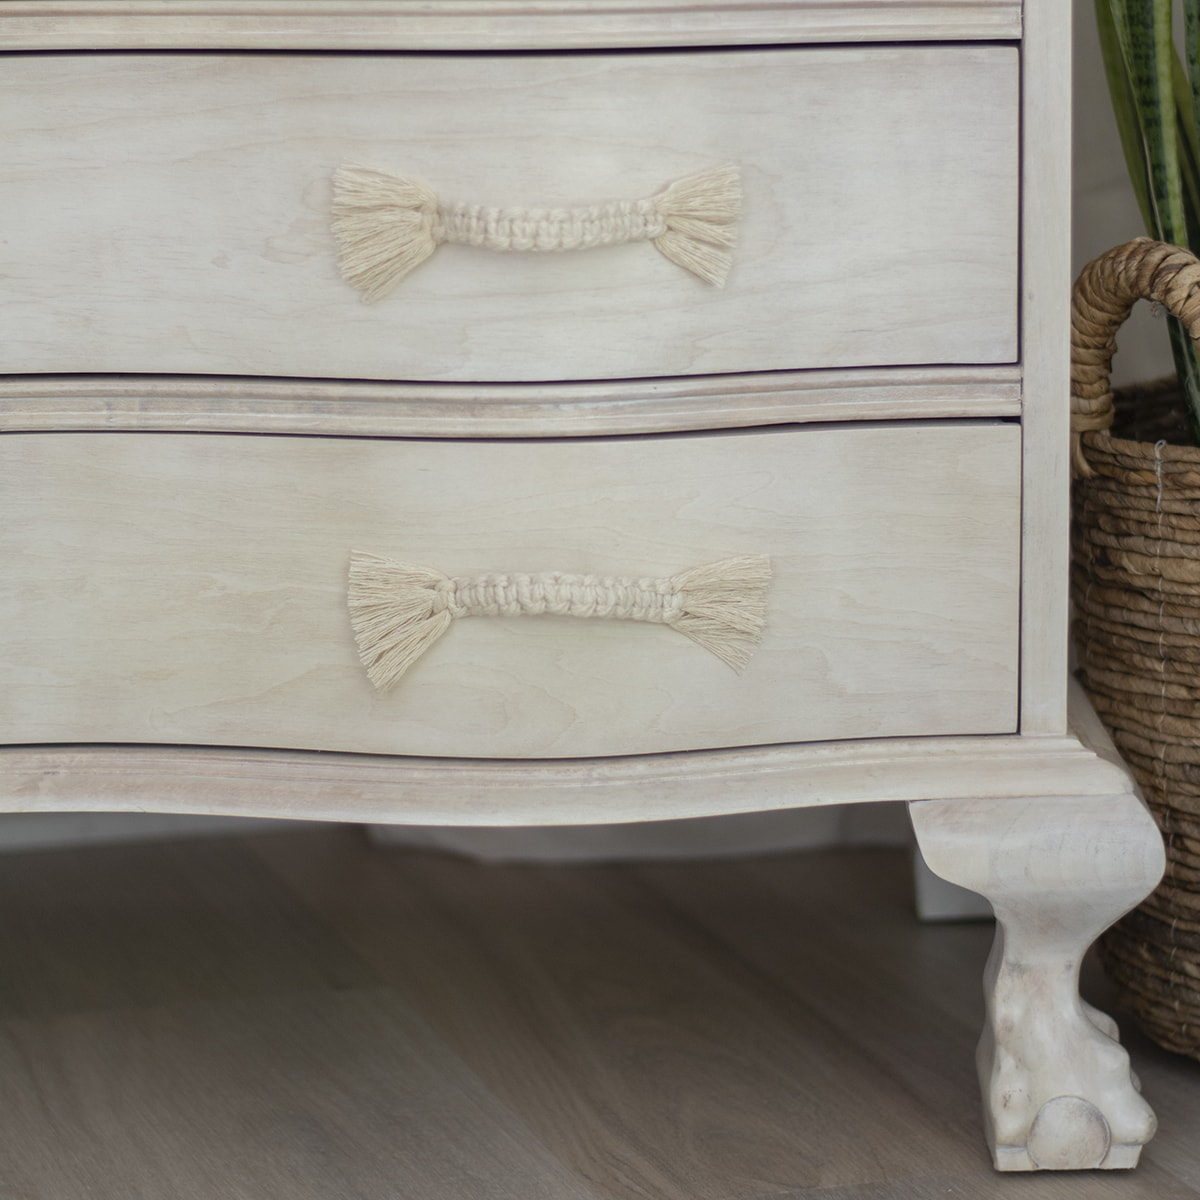 Super Easy And Cheap Diy Macrame Dresser Drawer Pulls Cuckoo4design